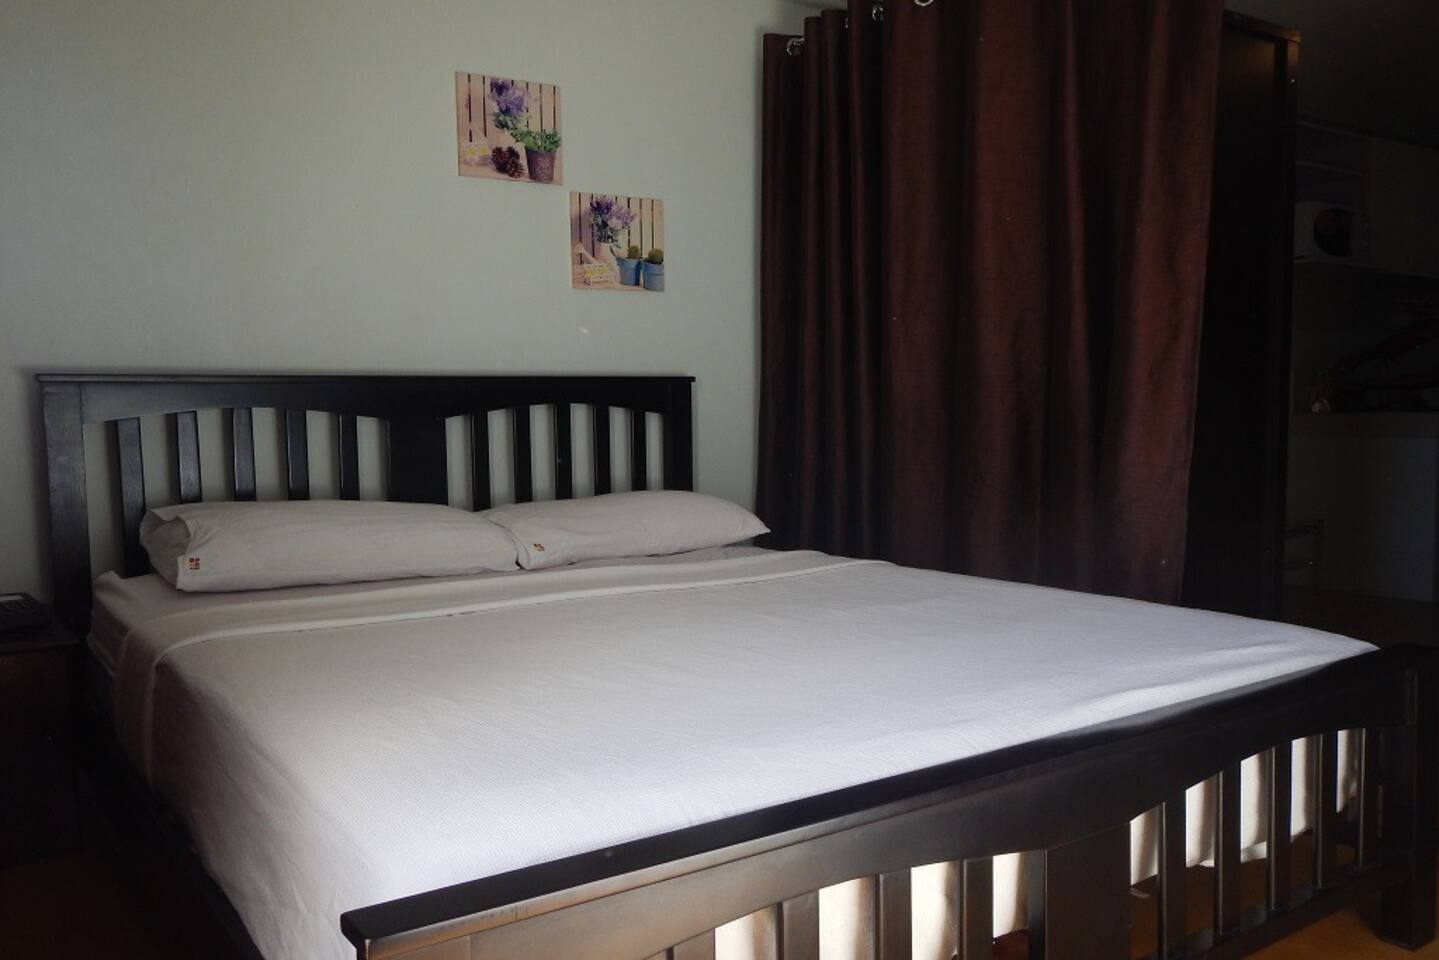 Crib for sale in davao city - One Oasis 1br Condotel Condominiums For Rent In Davao City Davao Region Philippines